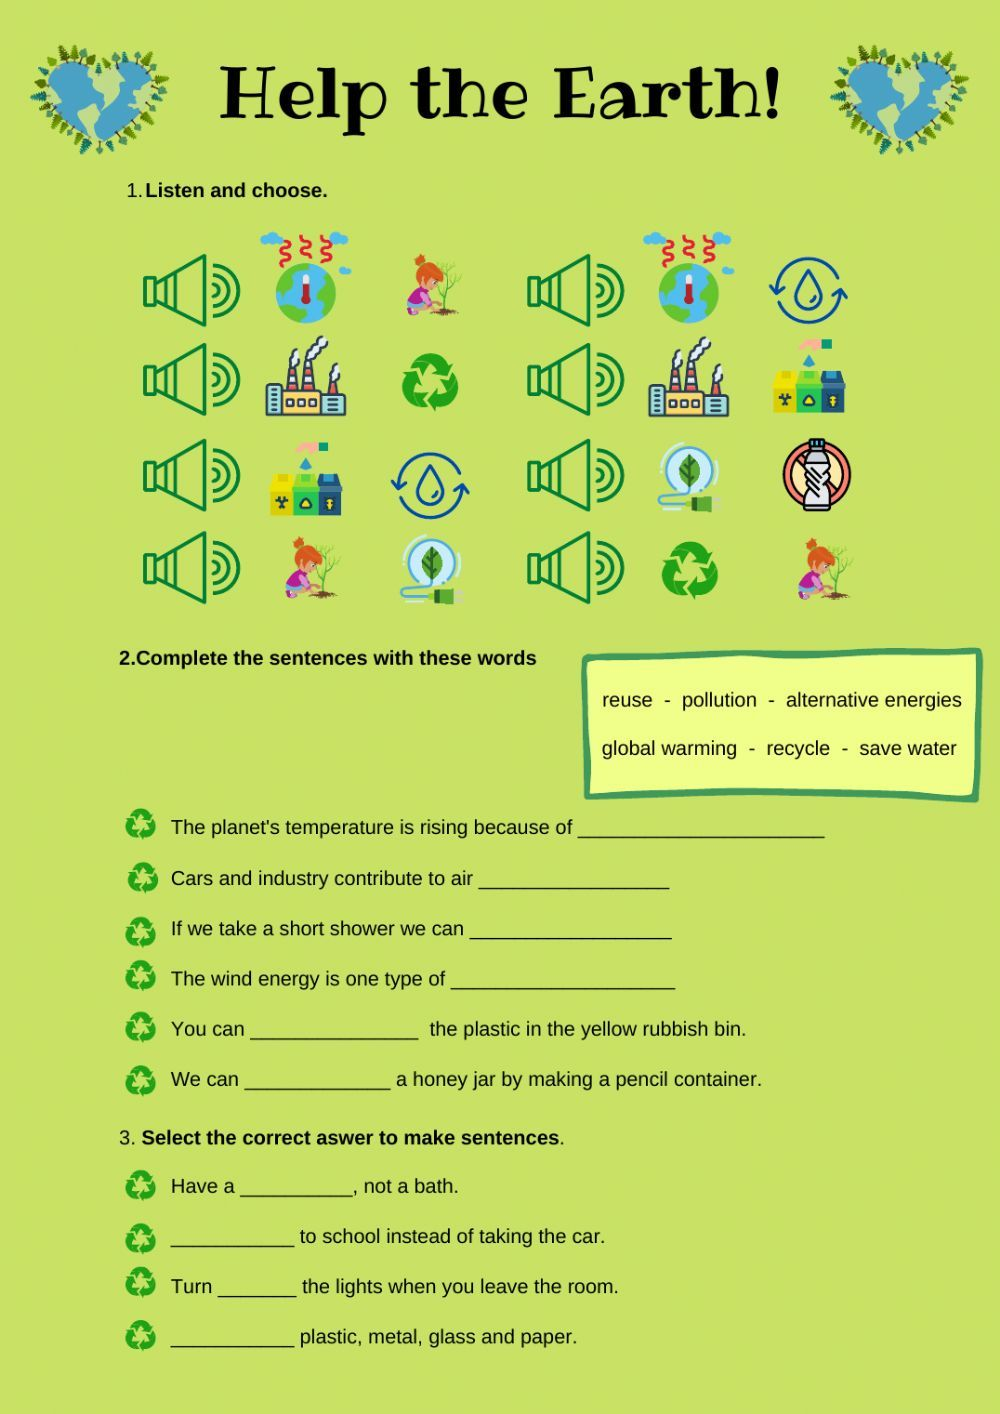 Environment Interactive And Downloadable Worksheet You Can Do The Exercises Online Worksheets English As A Second Language Esl English As A Second Language [ 1414 x 1000 Pixel ]